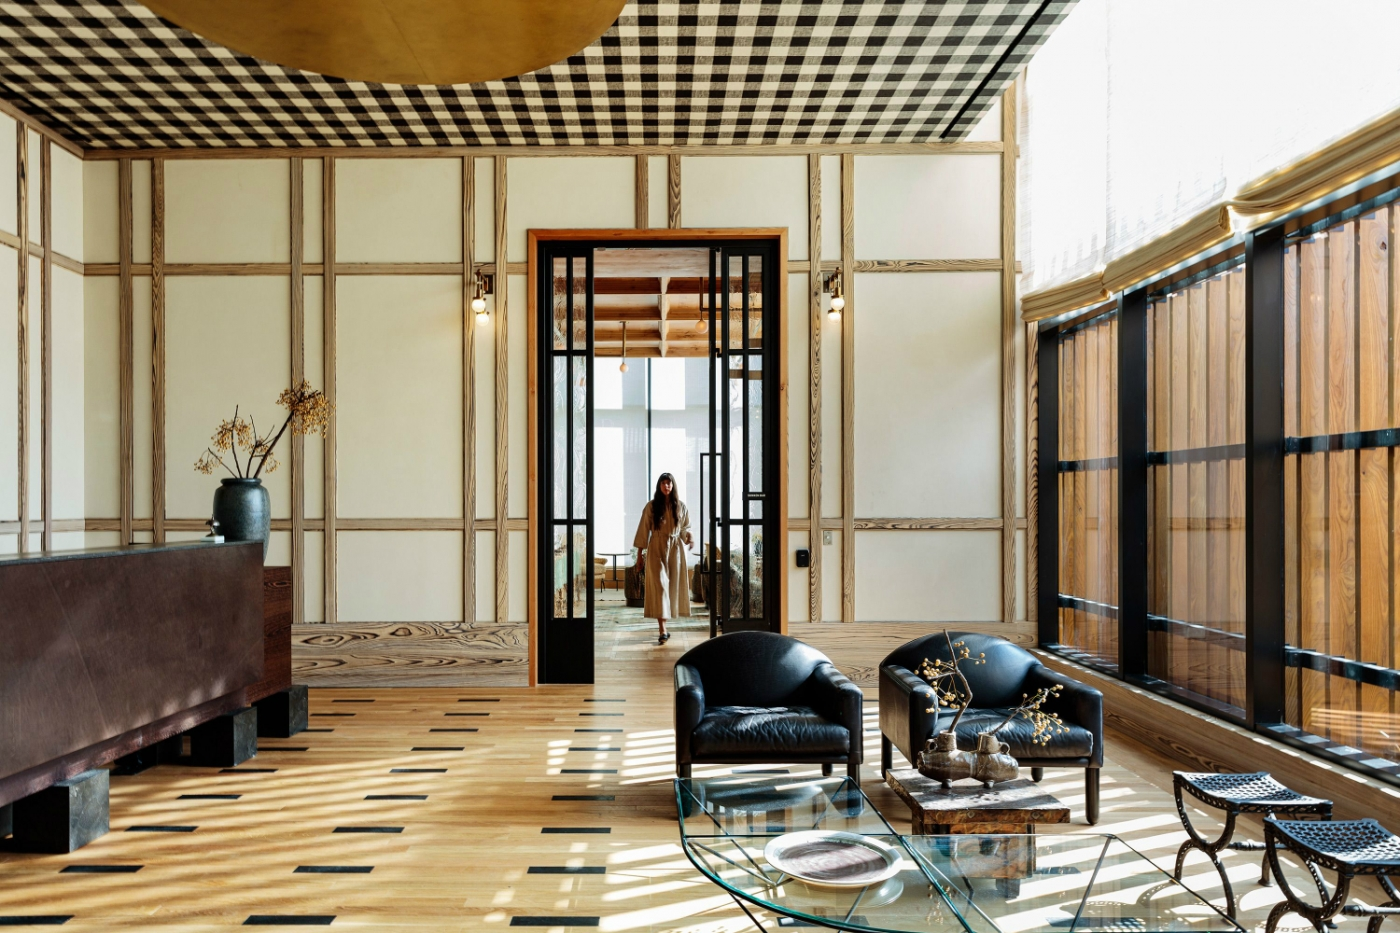 kelly wearstler Kelly Wearstler's New Proper Hotel & Residence With Layered Interiors feature 7 1400x933